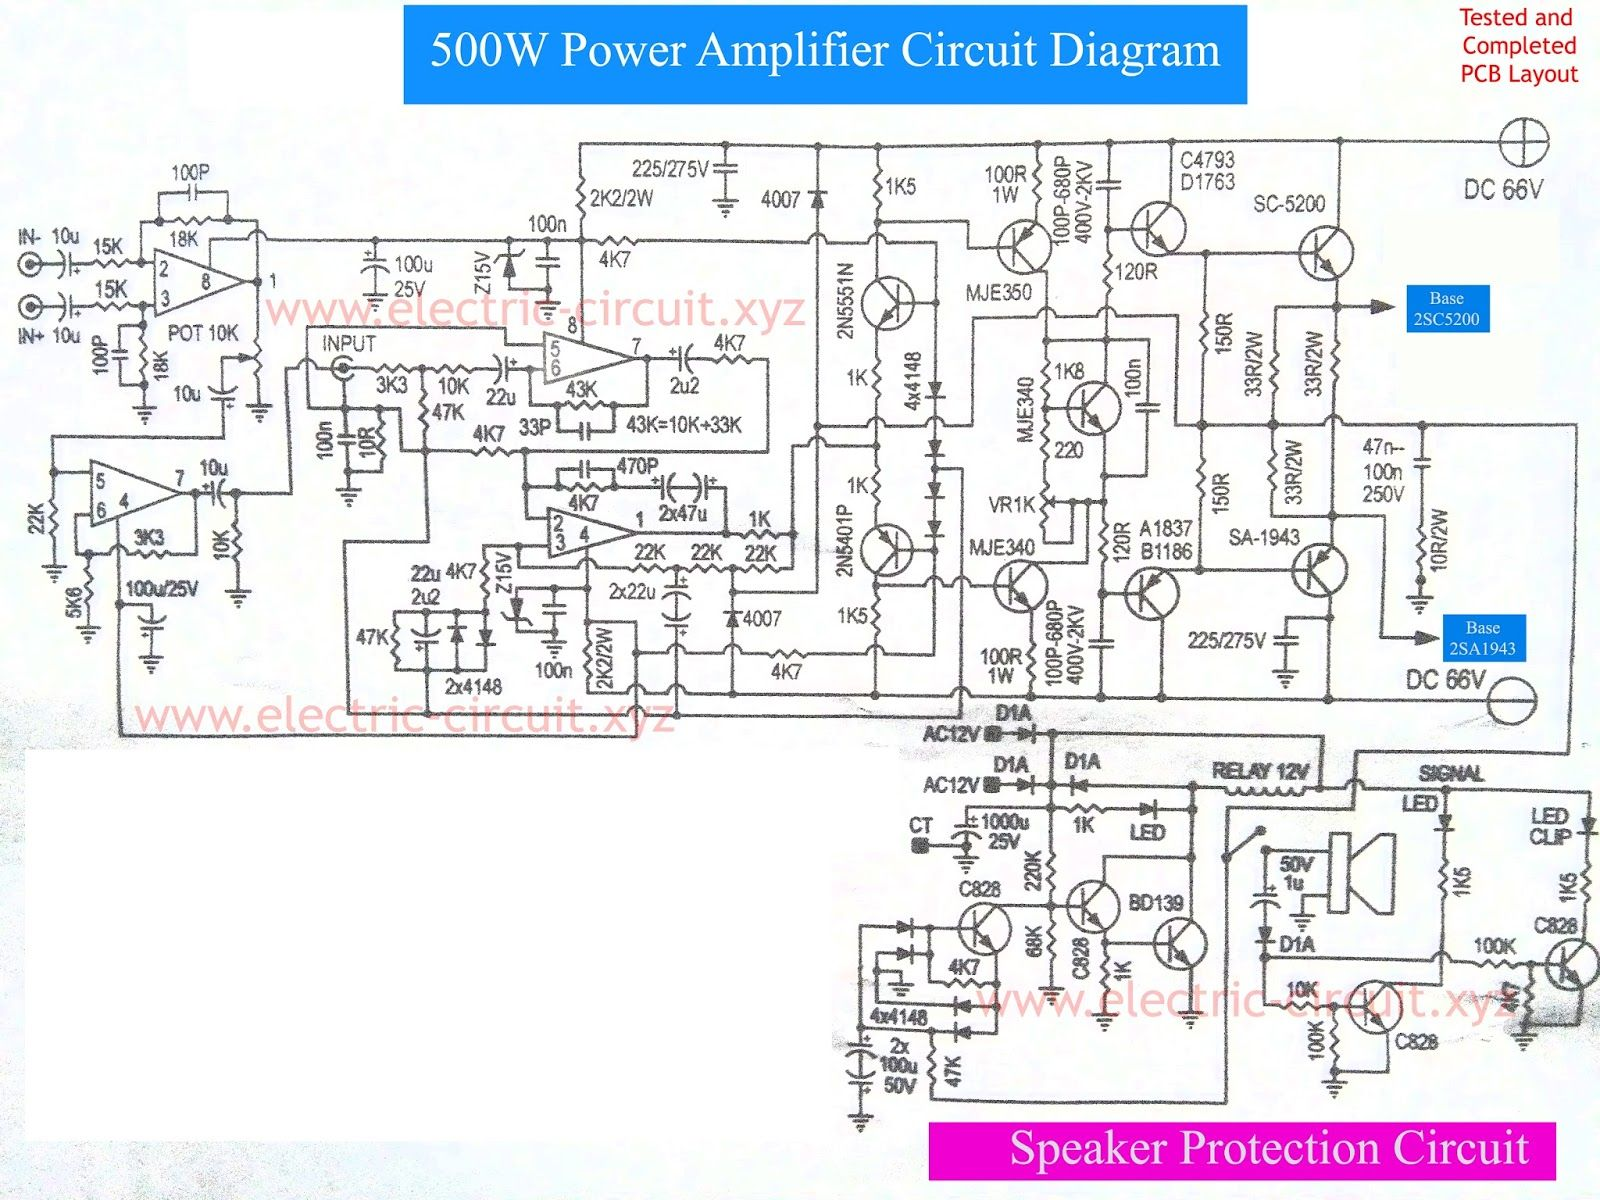 Power Amplifier 500w With Speaker Protection In 2018 500 1000 Watt Amp Circuit Diagram